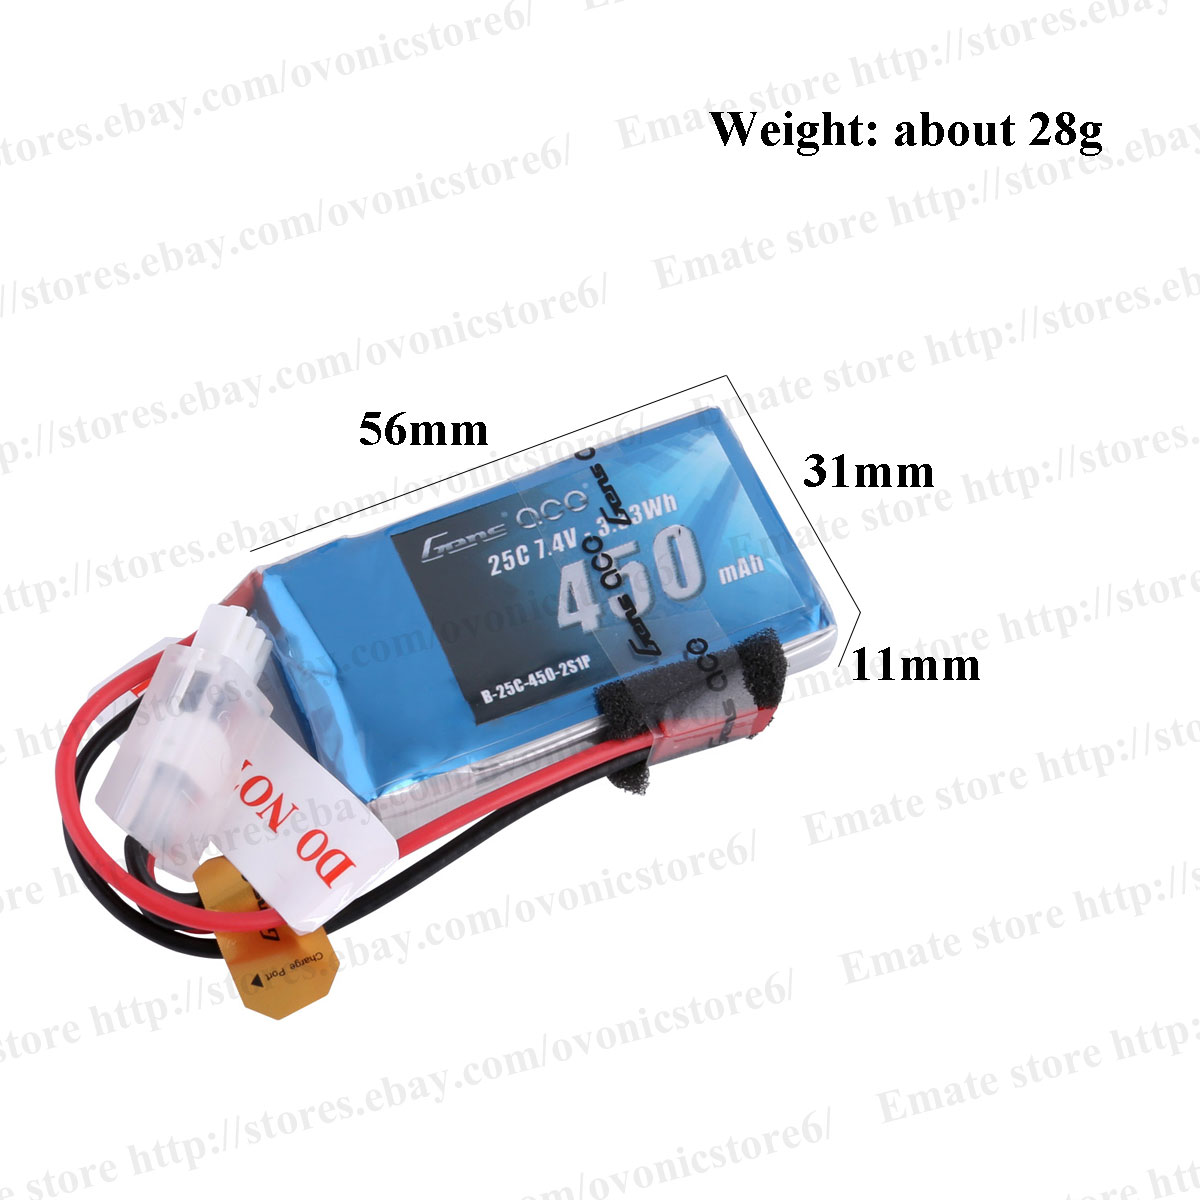 4X Gens ace Battery Pack 450mAh 7.4V 25C 2S1P JST-SYP Plug For RC ...